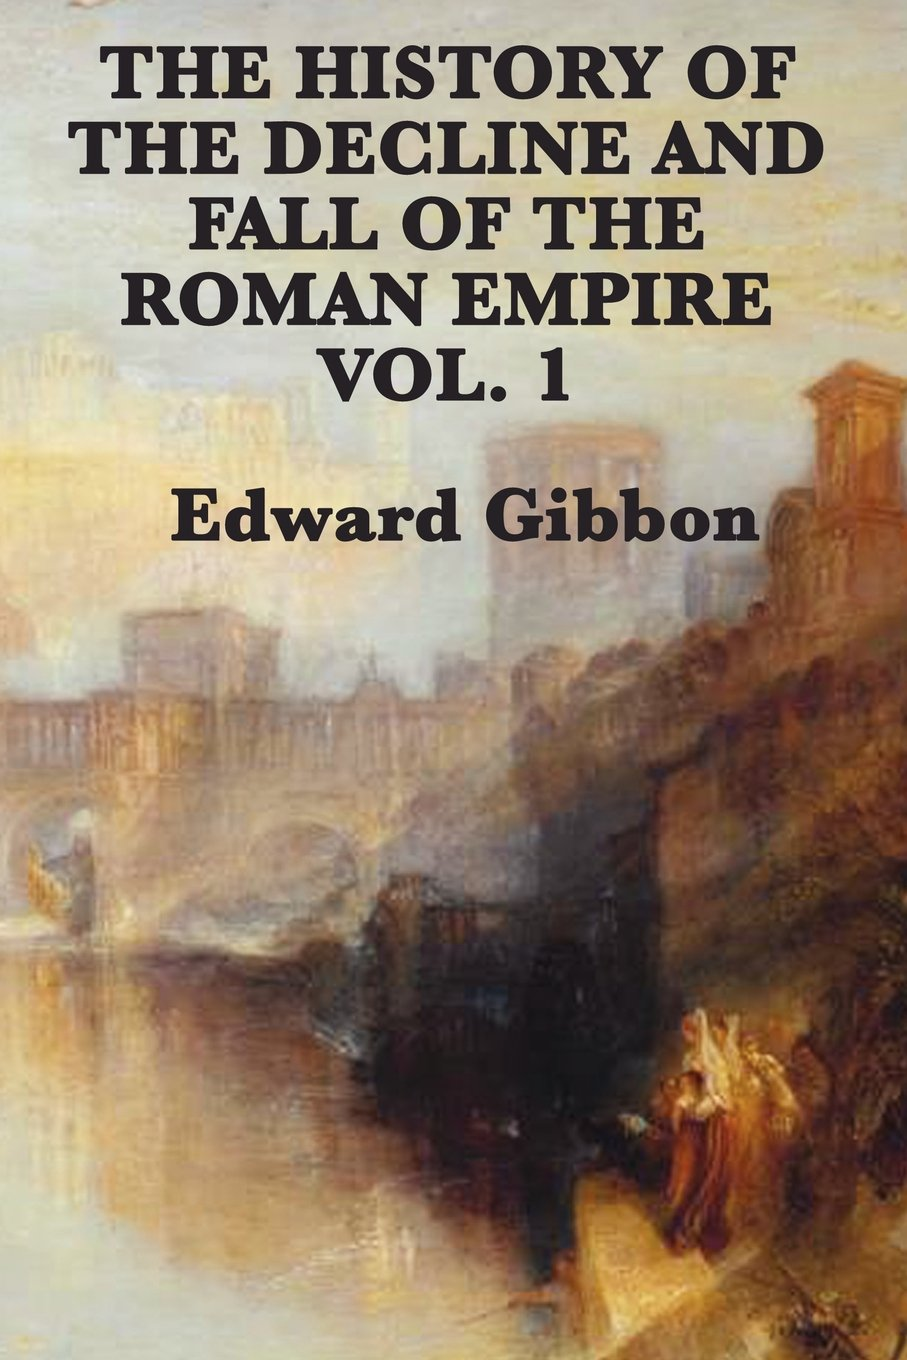 Download The History of the Decline and Fall of the Roman Empire Vol. 1 pdf epub